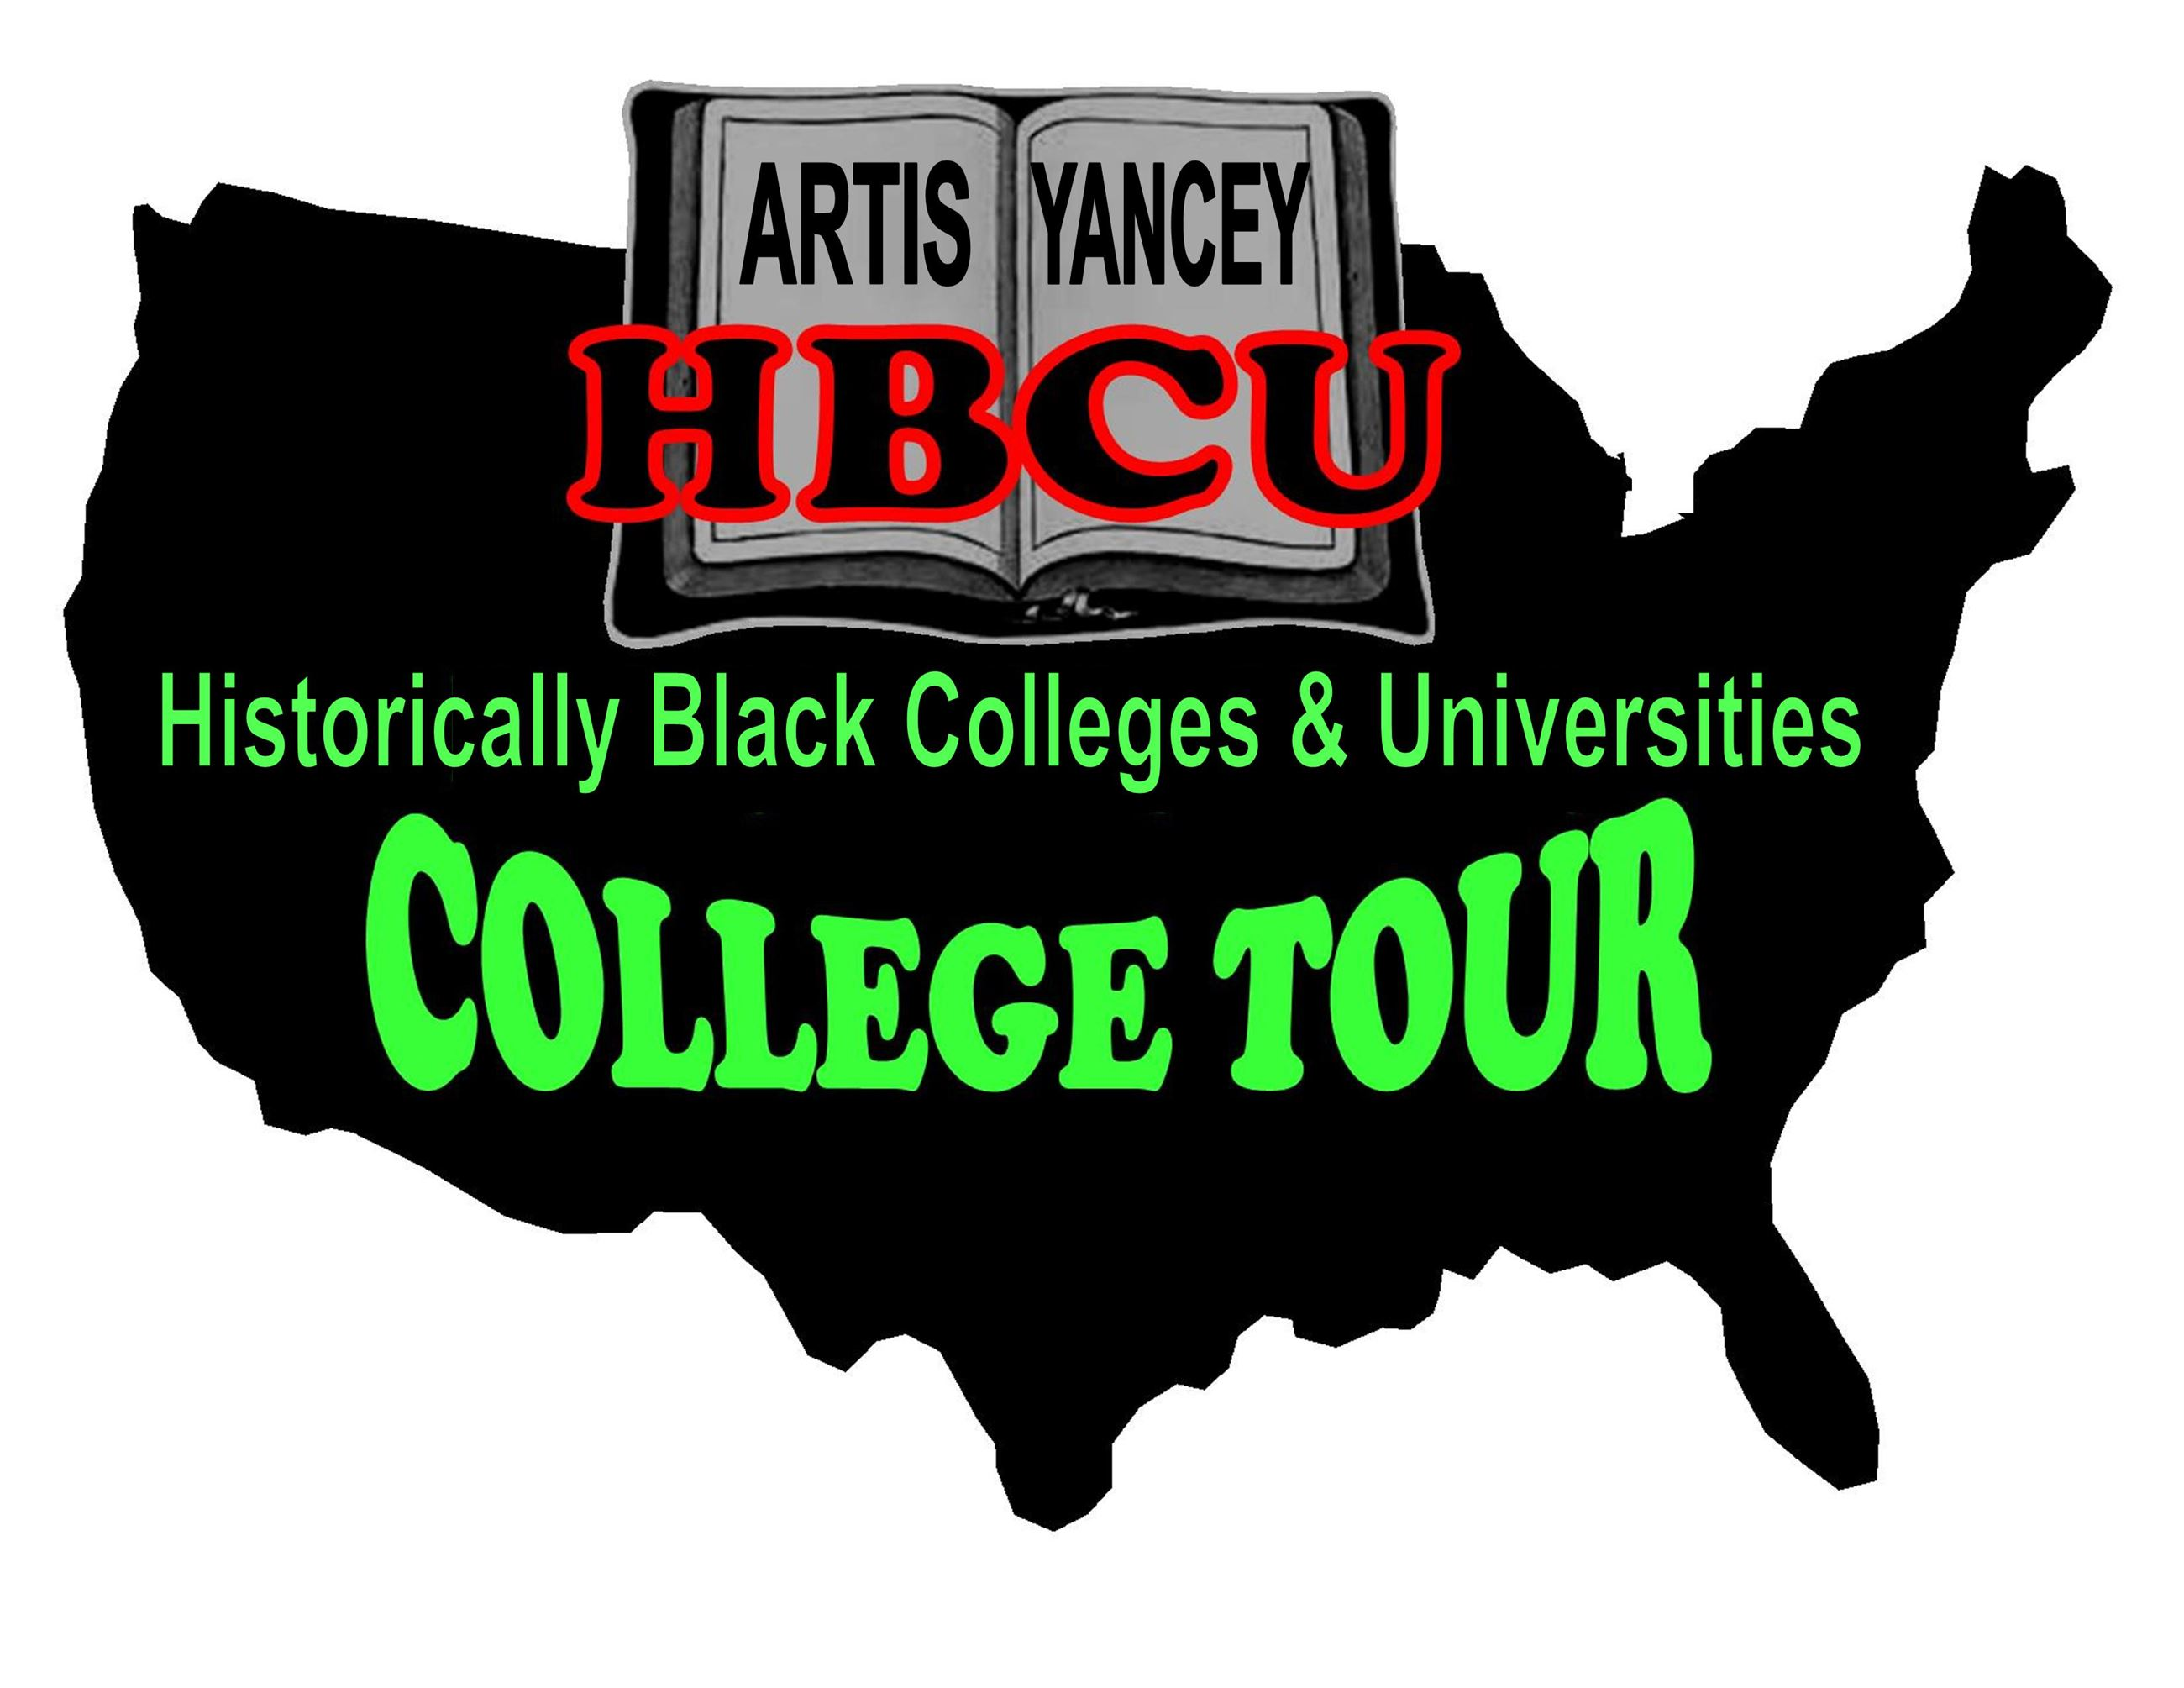 HBCU LOGO REVISED W ARTIS